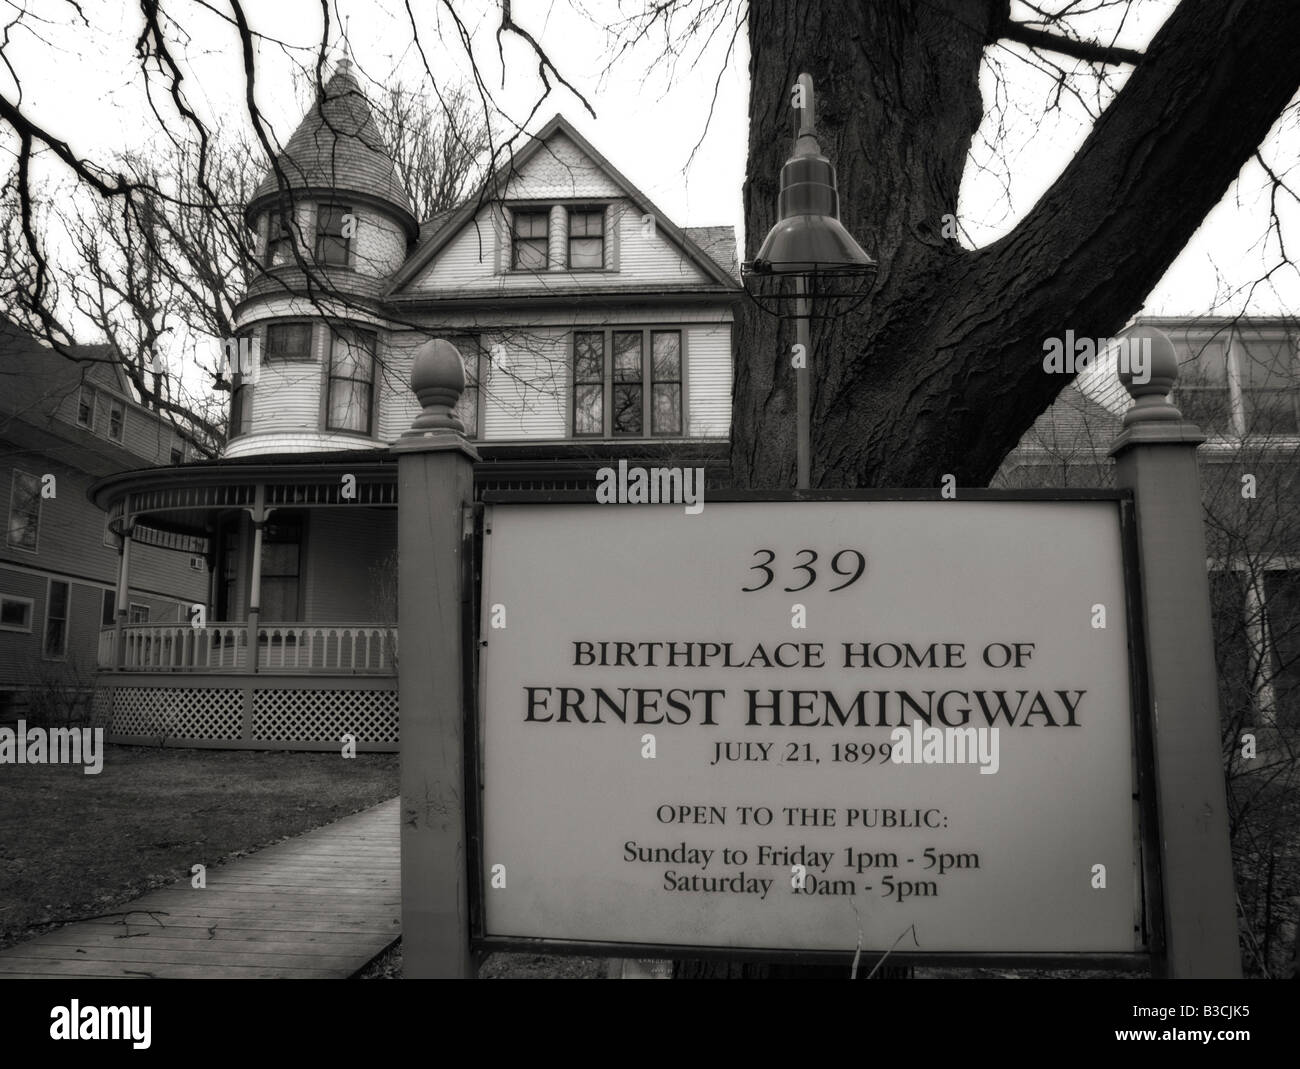 Ernest Hemingway Birthplace Home Oak Park Cook County Illinois USA